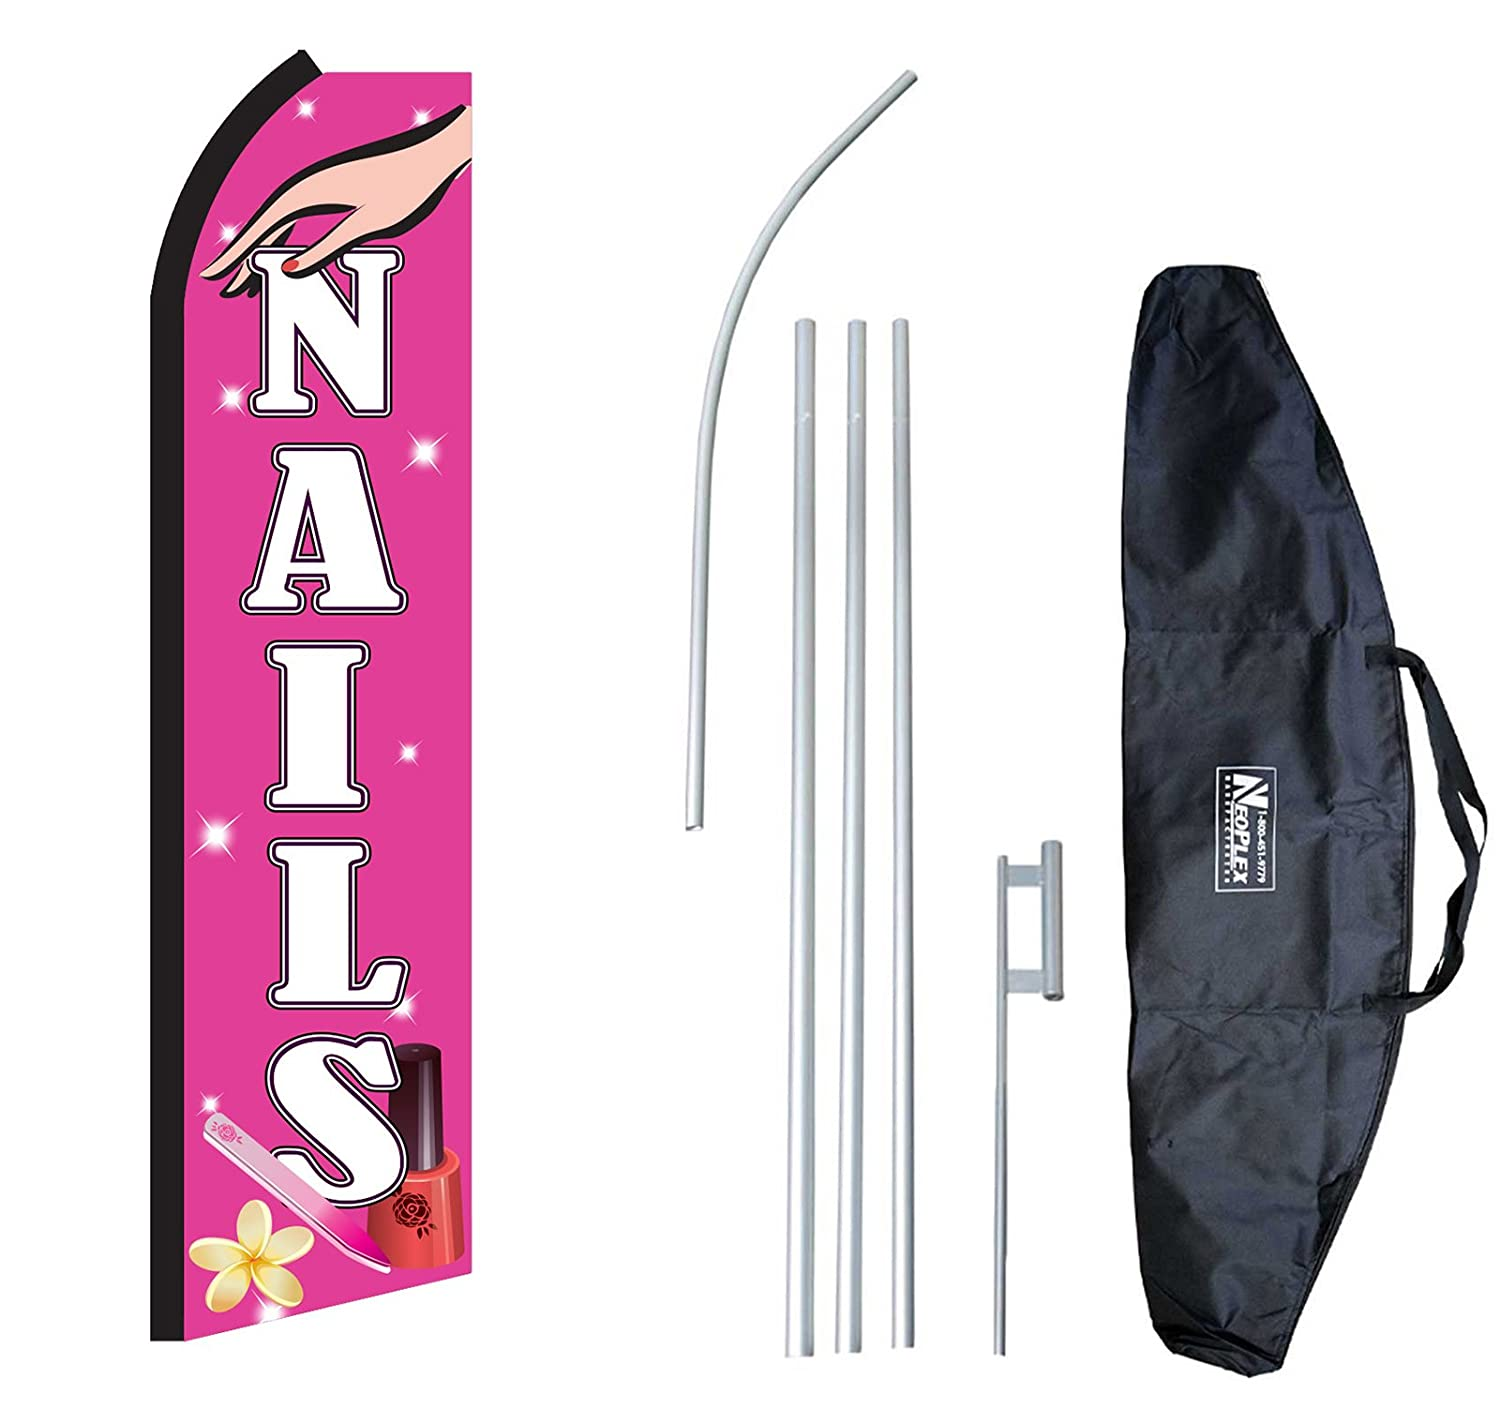 """Nails"" 12-foot Swooper Feather Flag and Case Complete Set...includes 12-foot Flag, 15-foot Pole, Ground Spike, and Carrying/Storage Case"